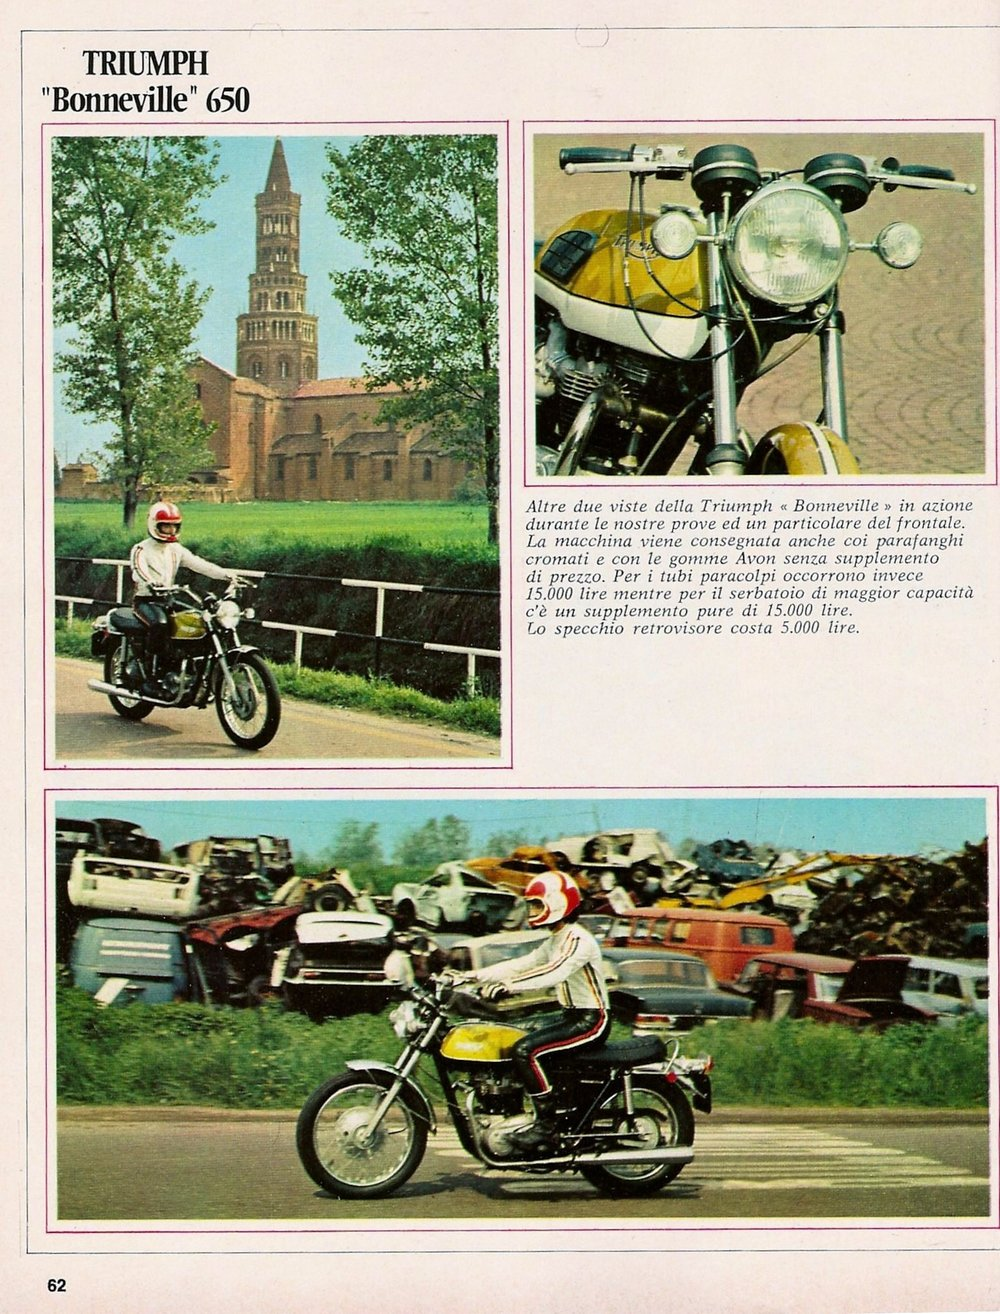 1972 Triumph Bonneville road test.5.jpg